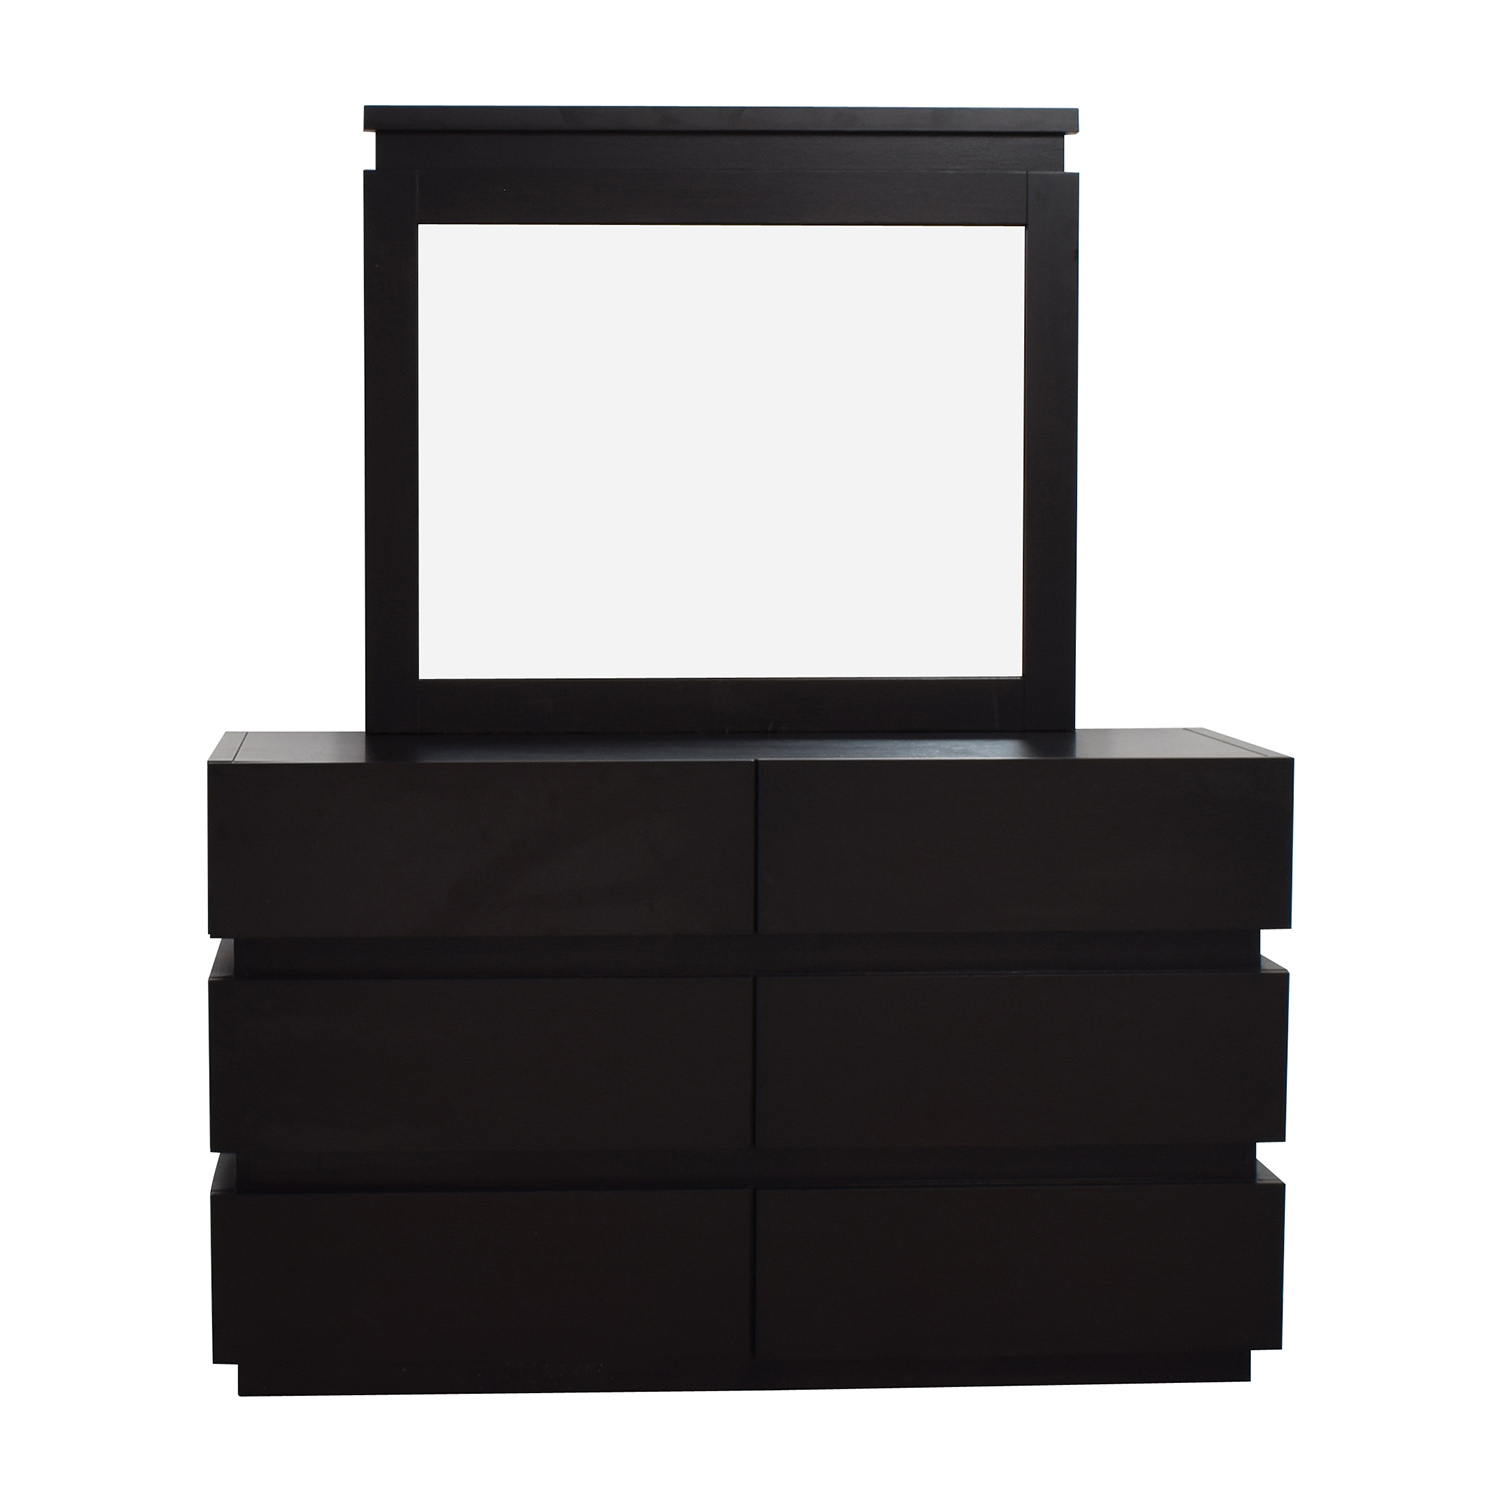 Memoky Memoky Six-Drawer Dresser dimensions